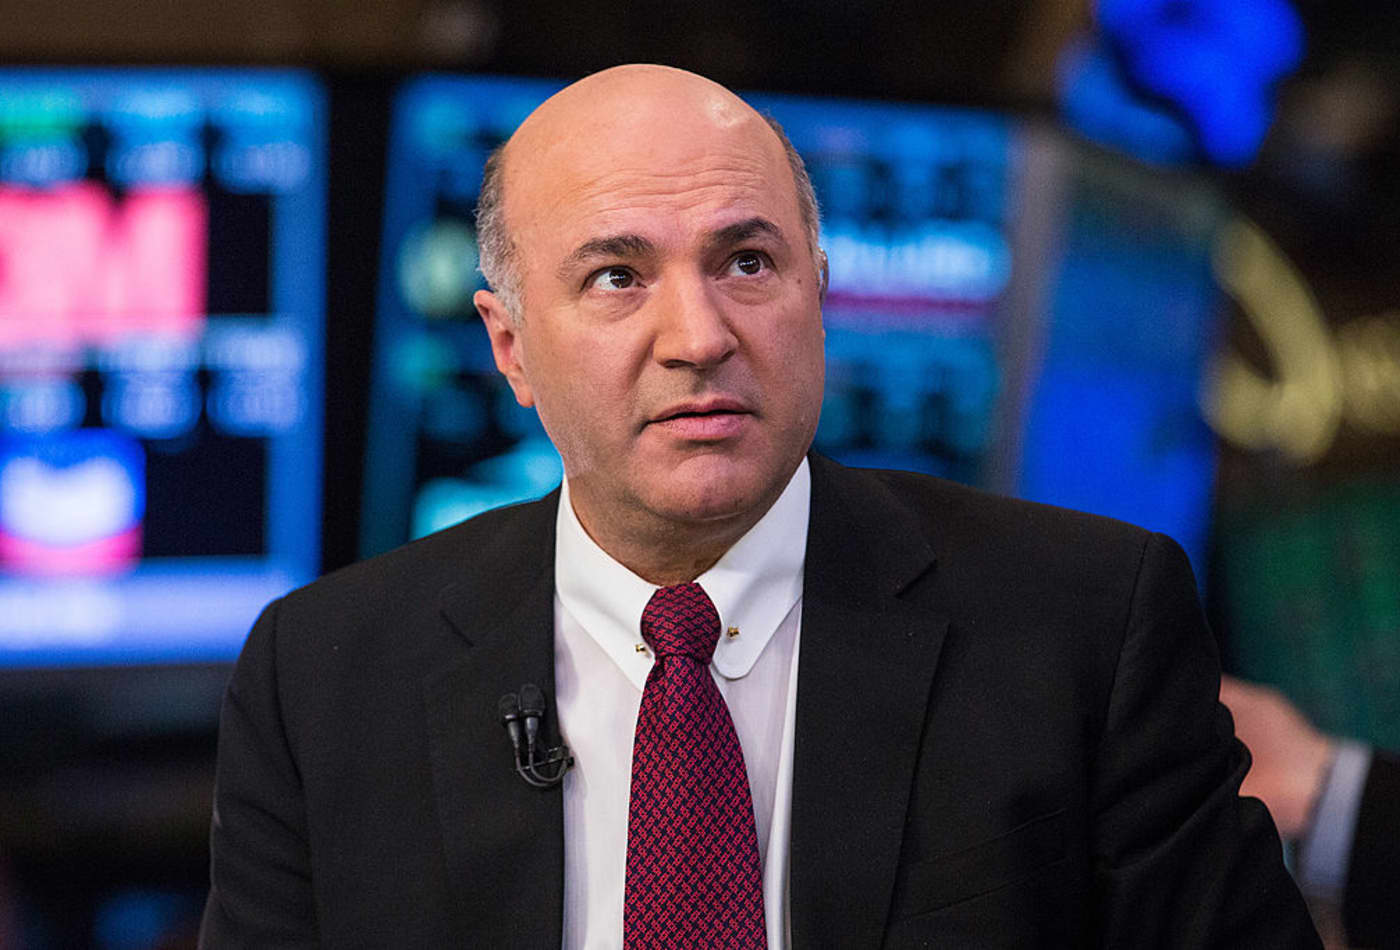 Kevin O'Leary on stimulus: 'We don't need the $1,200 checks'—here's what would help more